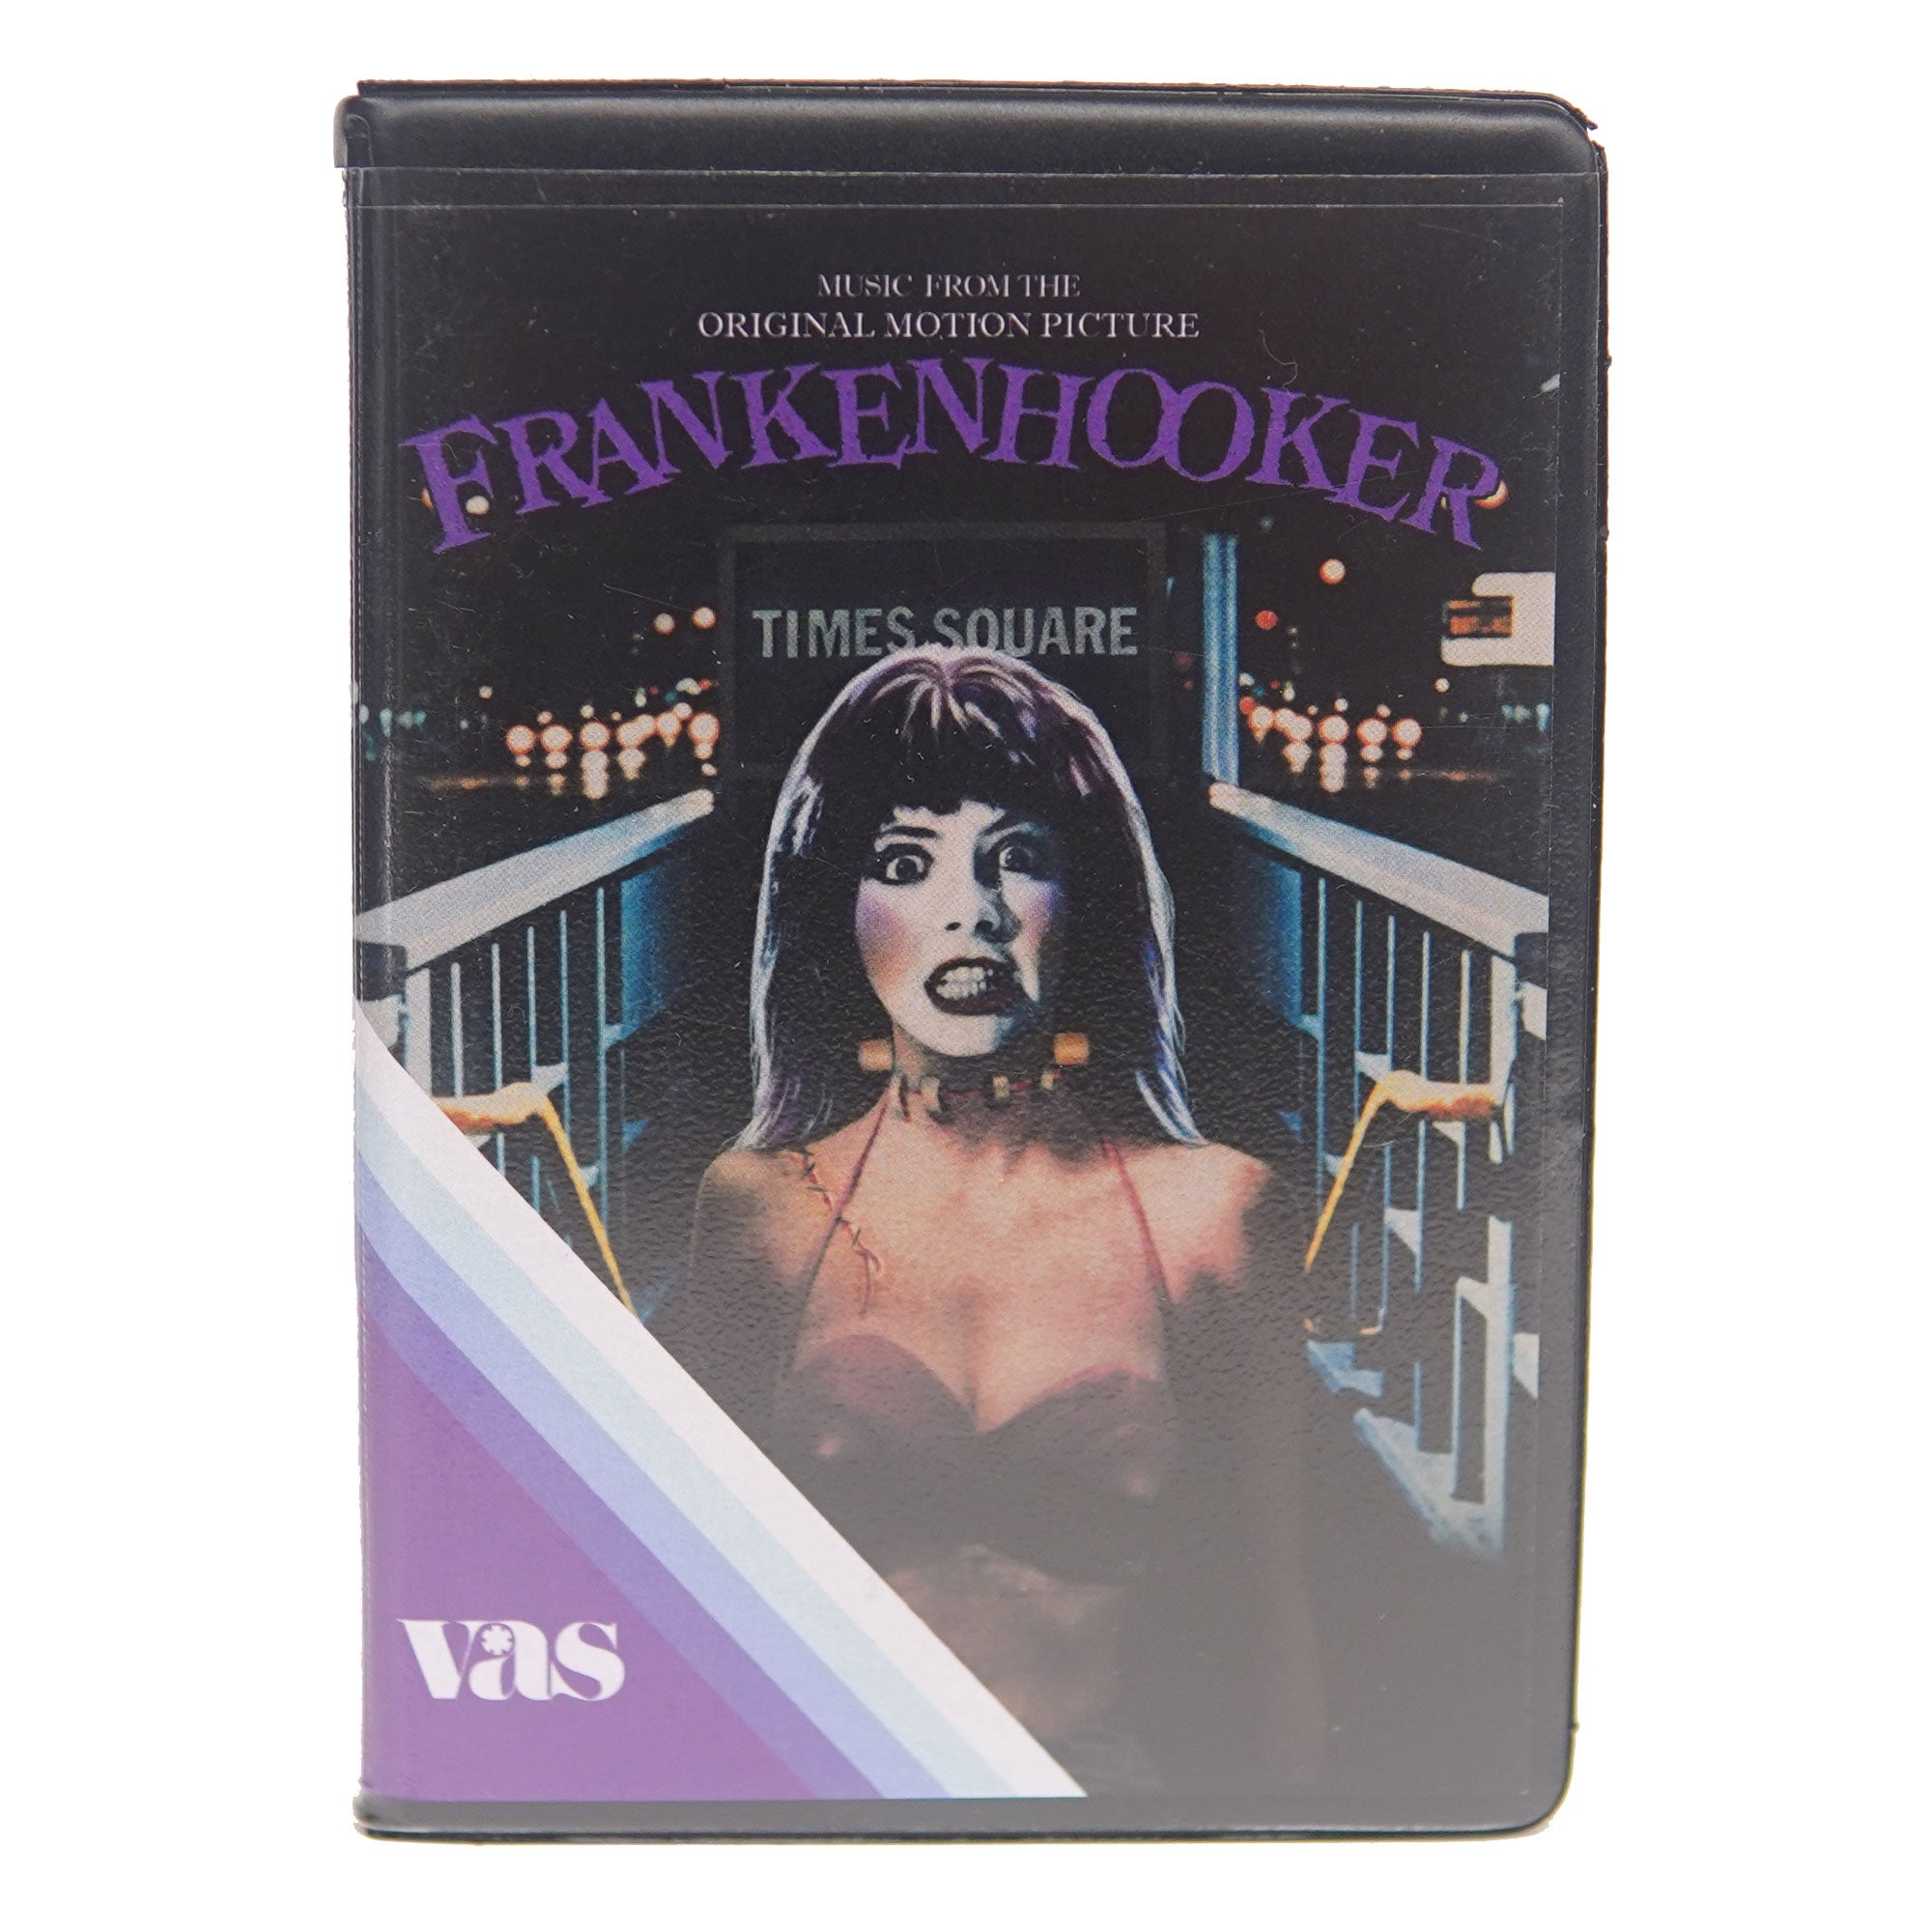 Frankenhooker - Original Motion Picture Soundtrack VAS